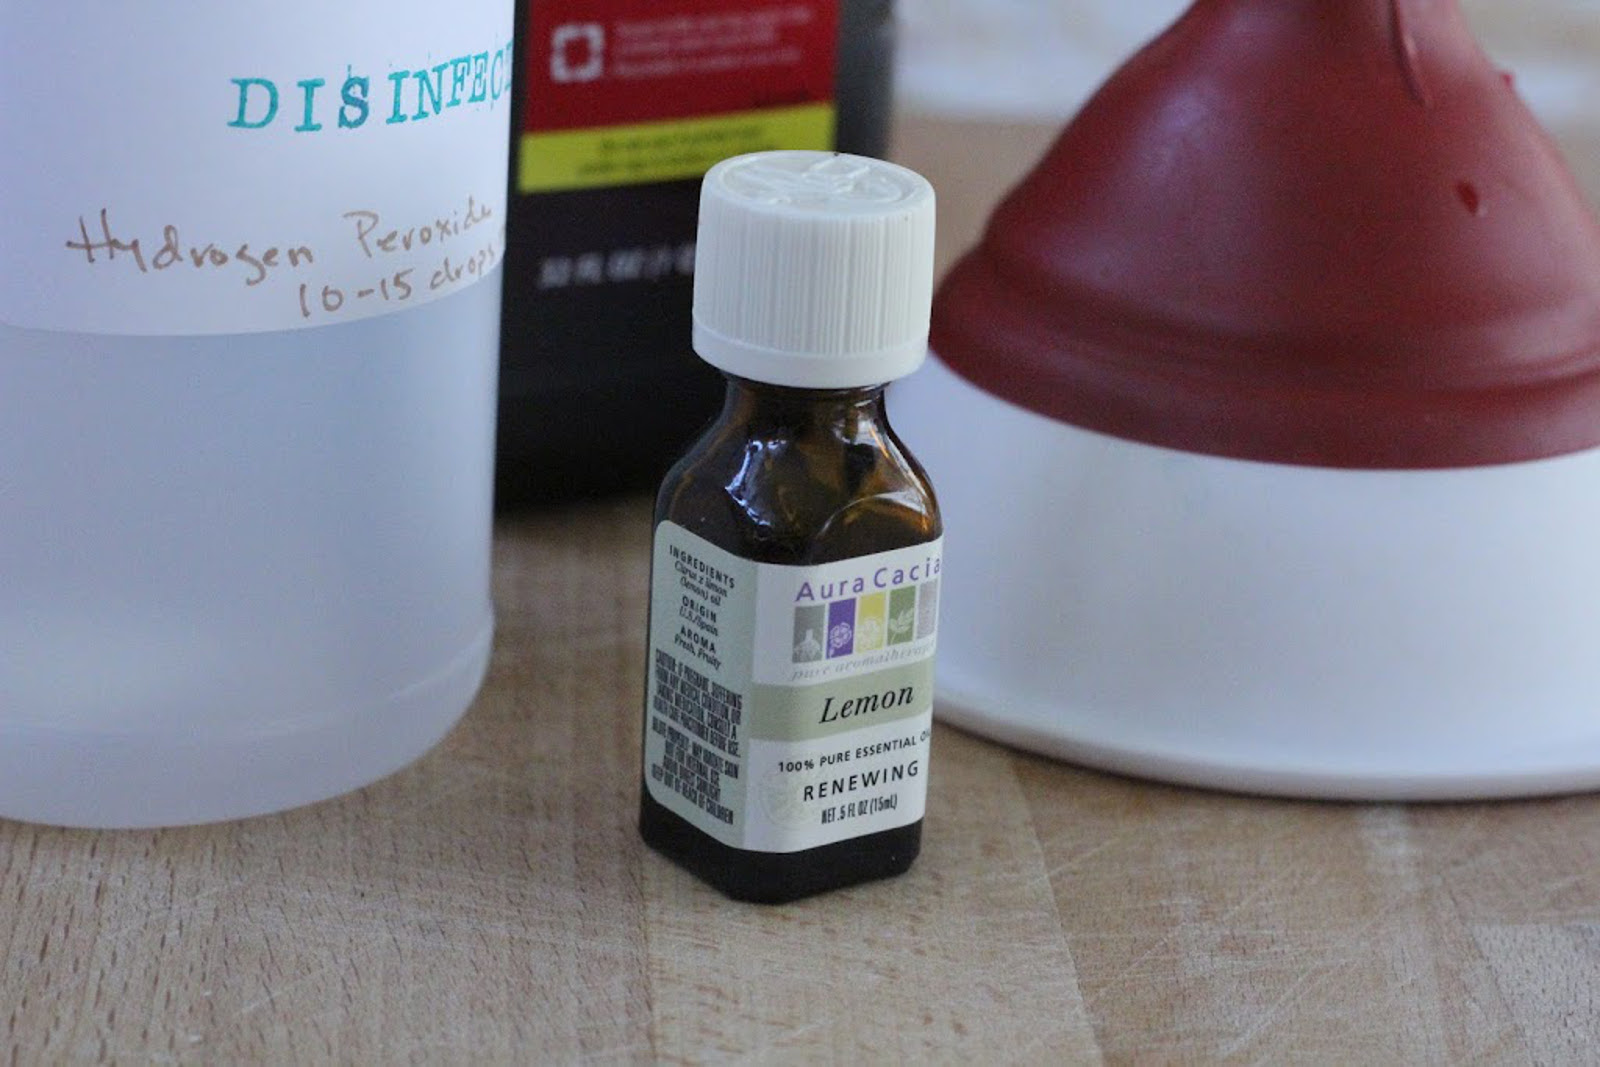 DIY Disinfectant Spray - One Green